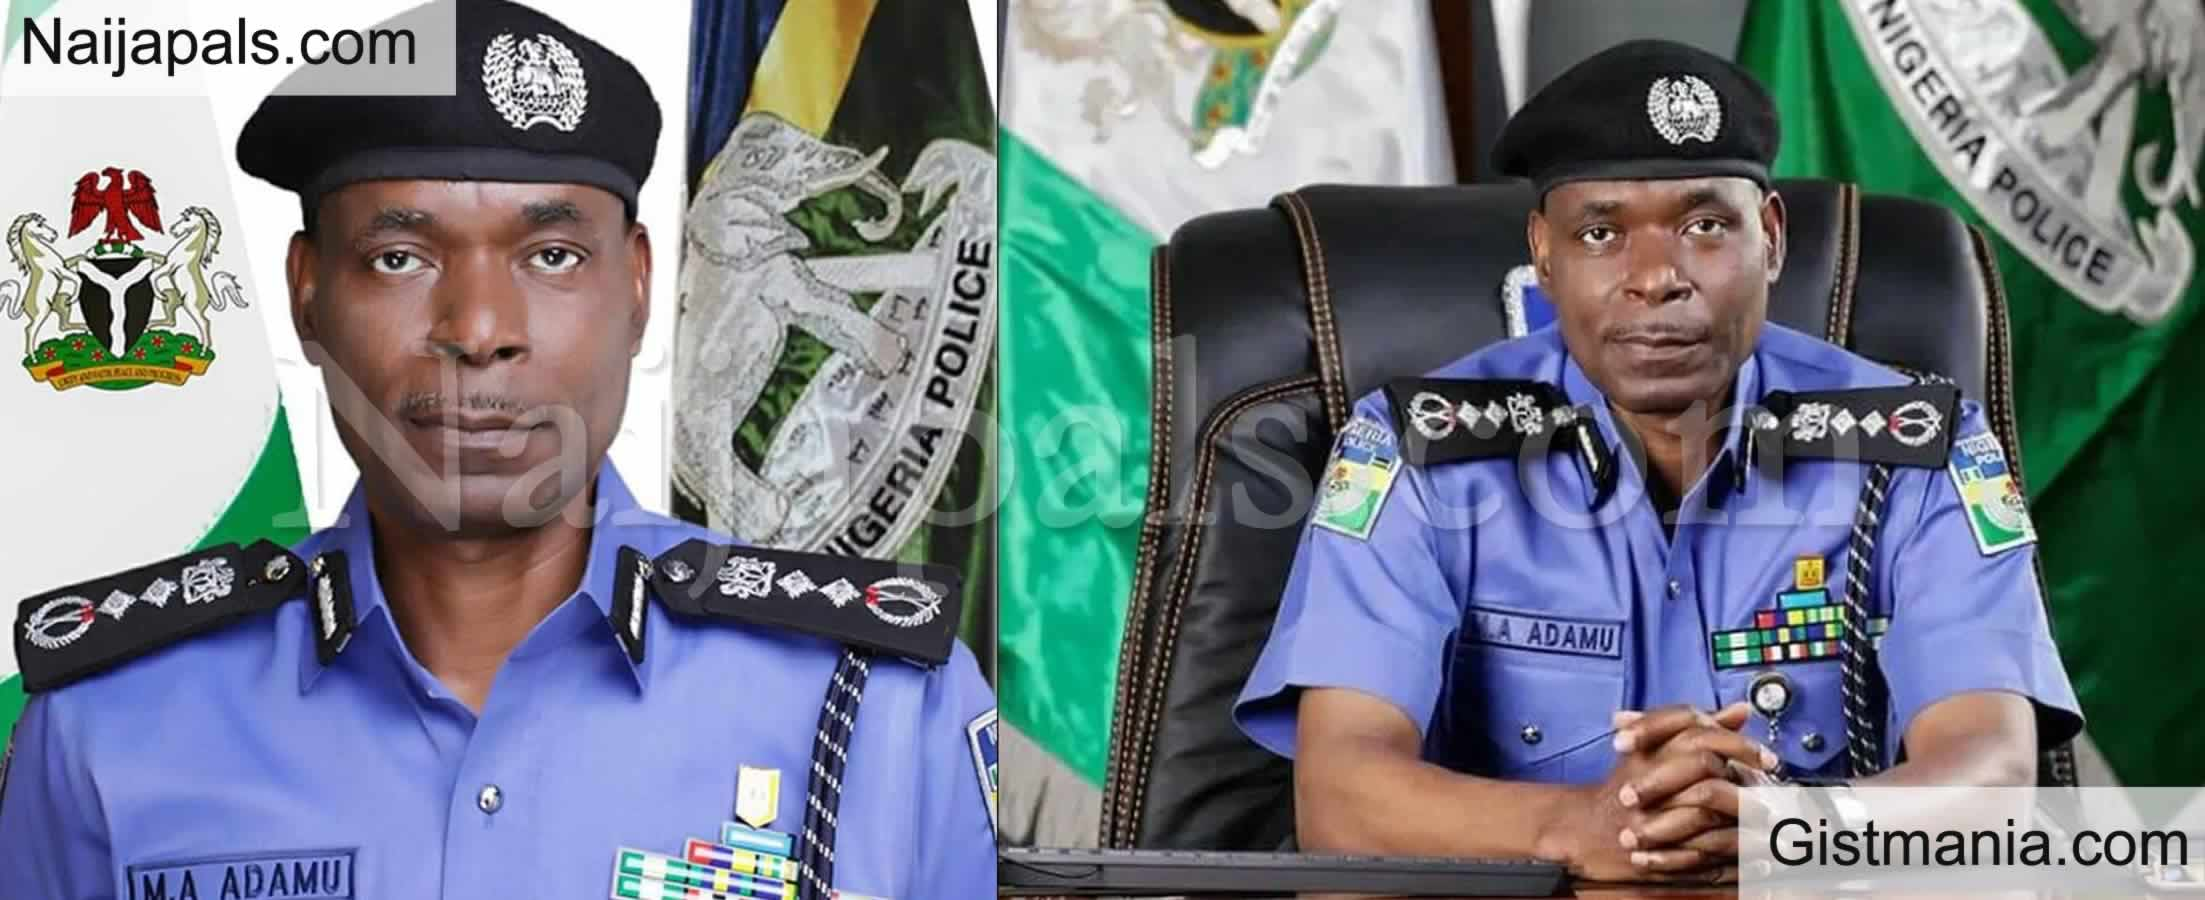 "<img alt='.' class='lazyload' data-src='https://img.gistmania.com/emot/news.gif' /> <b>""#ENDSARS Protest Turned Violent, We Will Not Allow It Again"" -IGP Adamu Warns Protesters</b>"